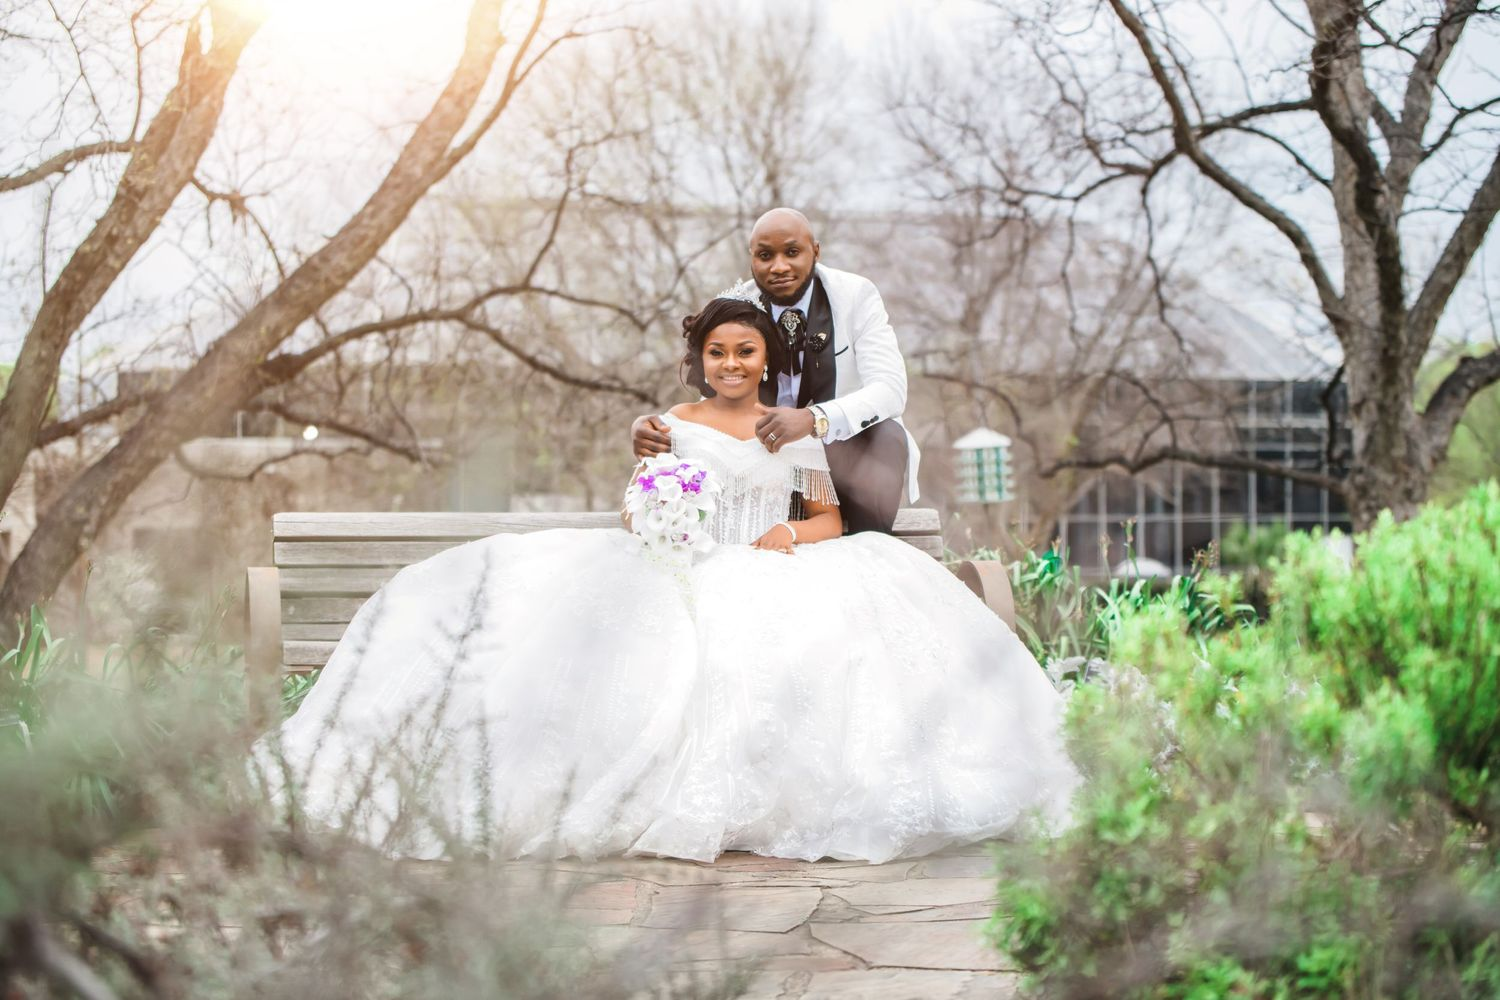 Wedding at Fort worth Botanic garden with Dallas wedding photographer